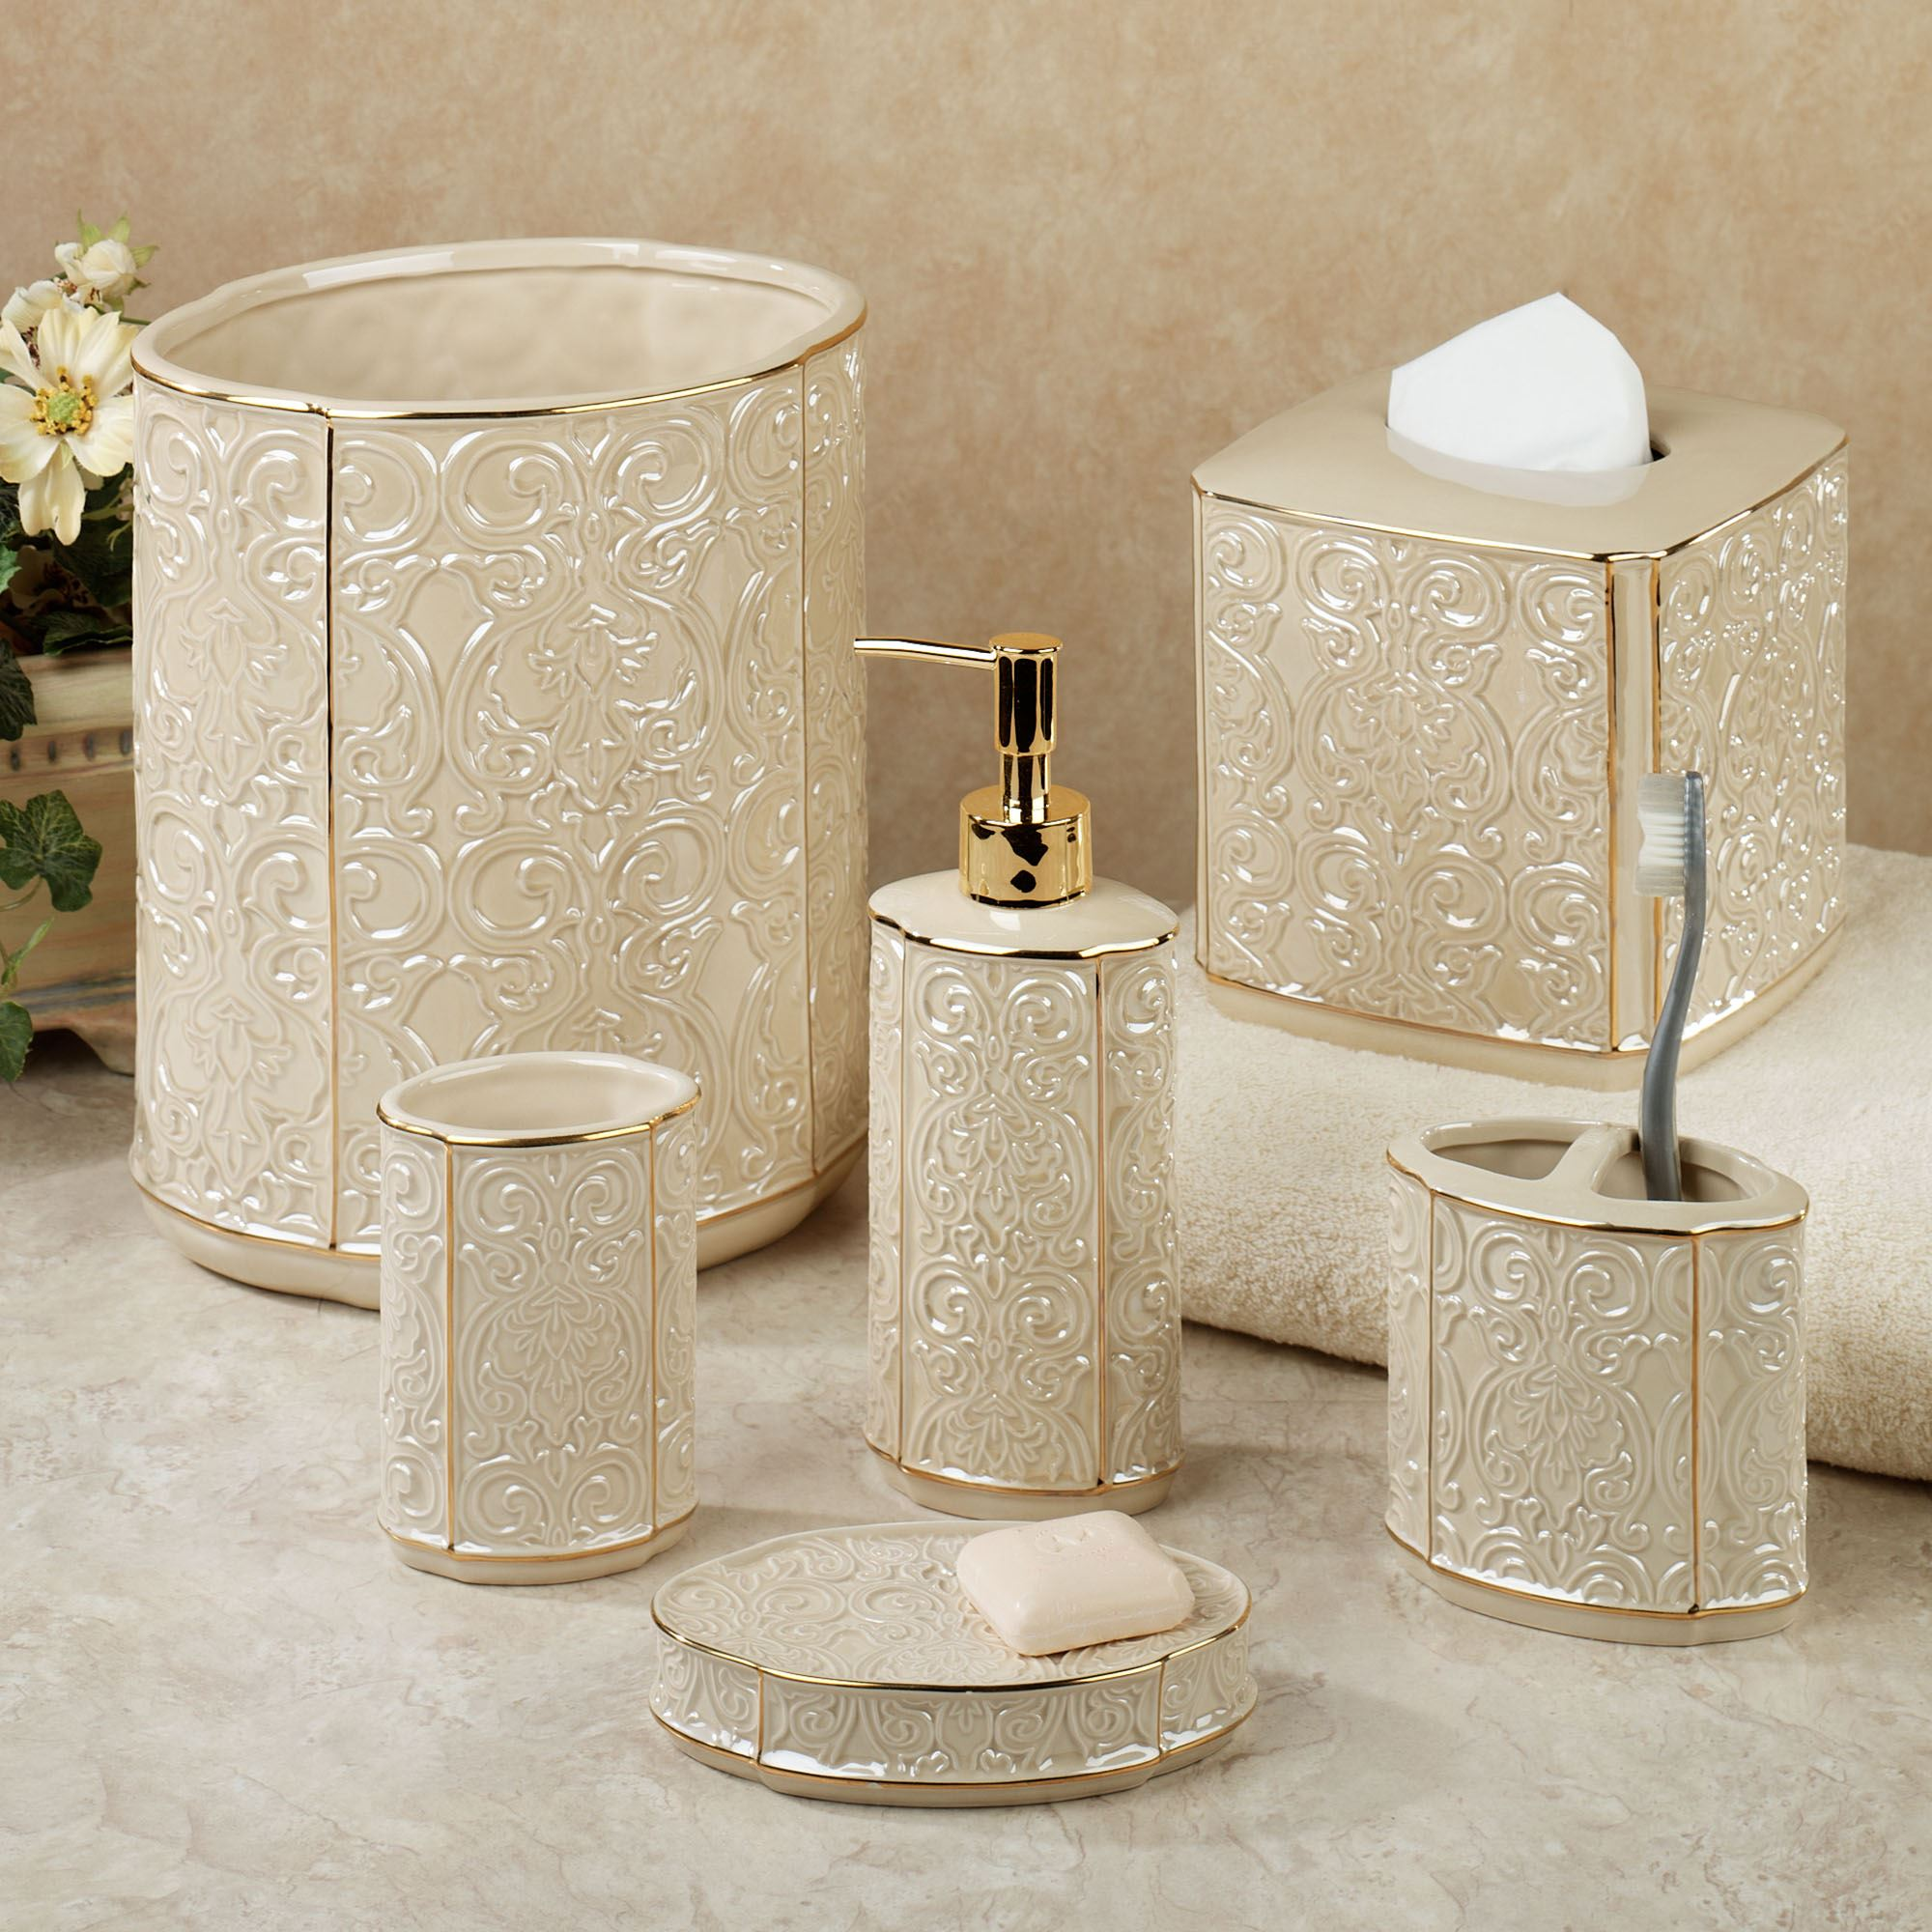 Furla cream damask ceramic bath accessories for Gold bathroom accessories